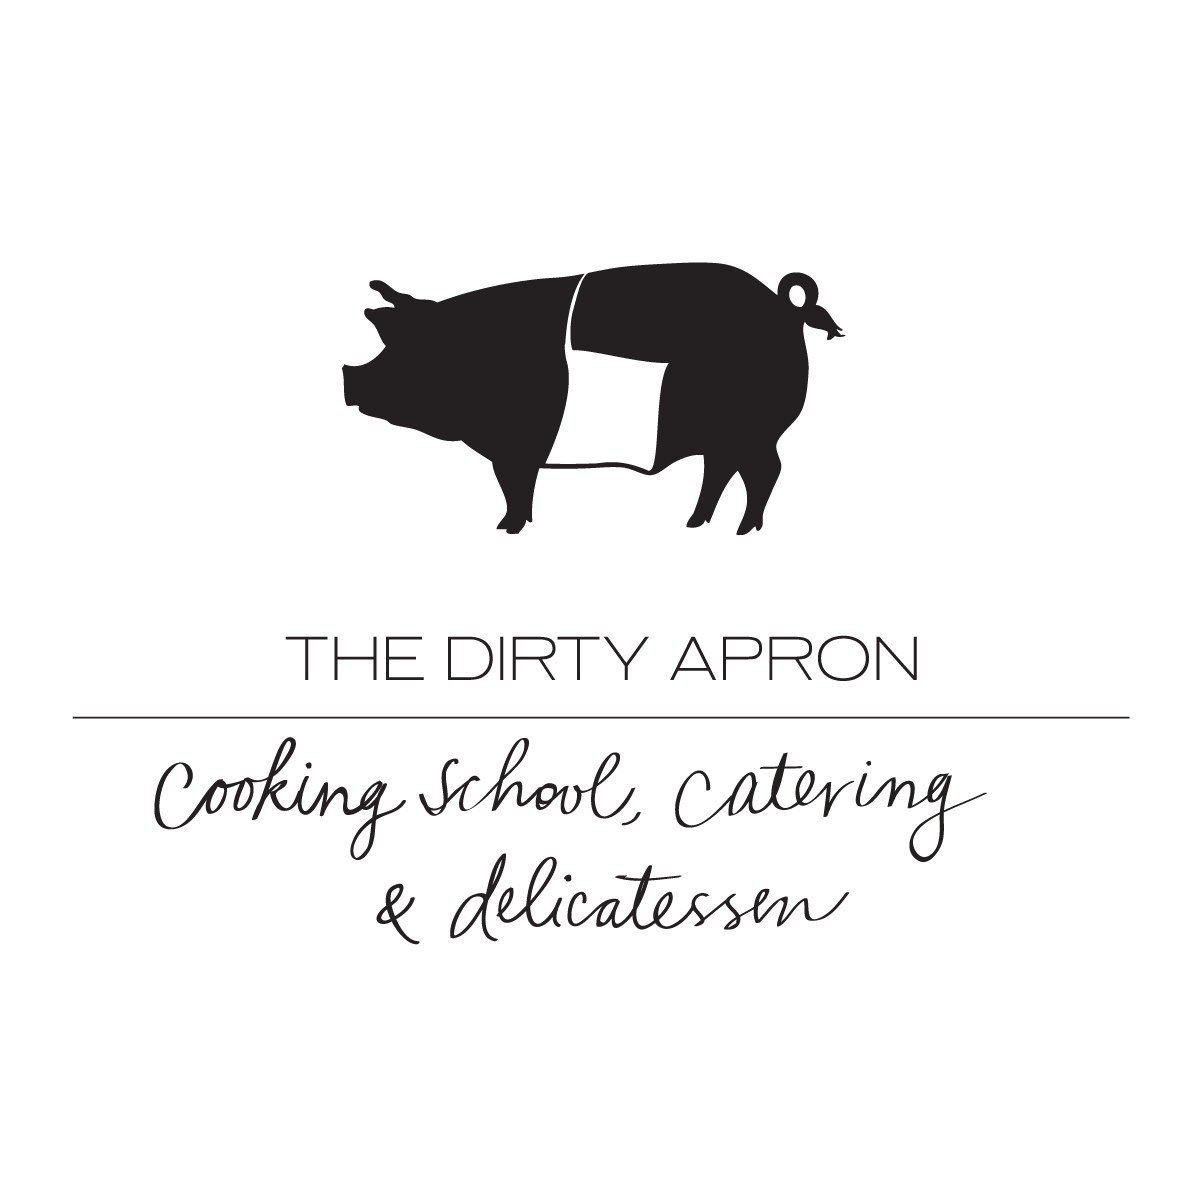 The Dirty Apron Cooking School, Delicatessen & Catering